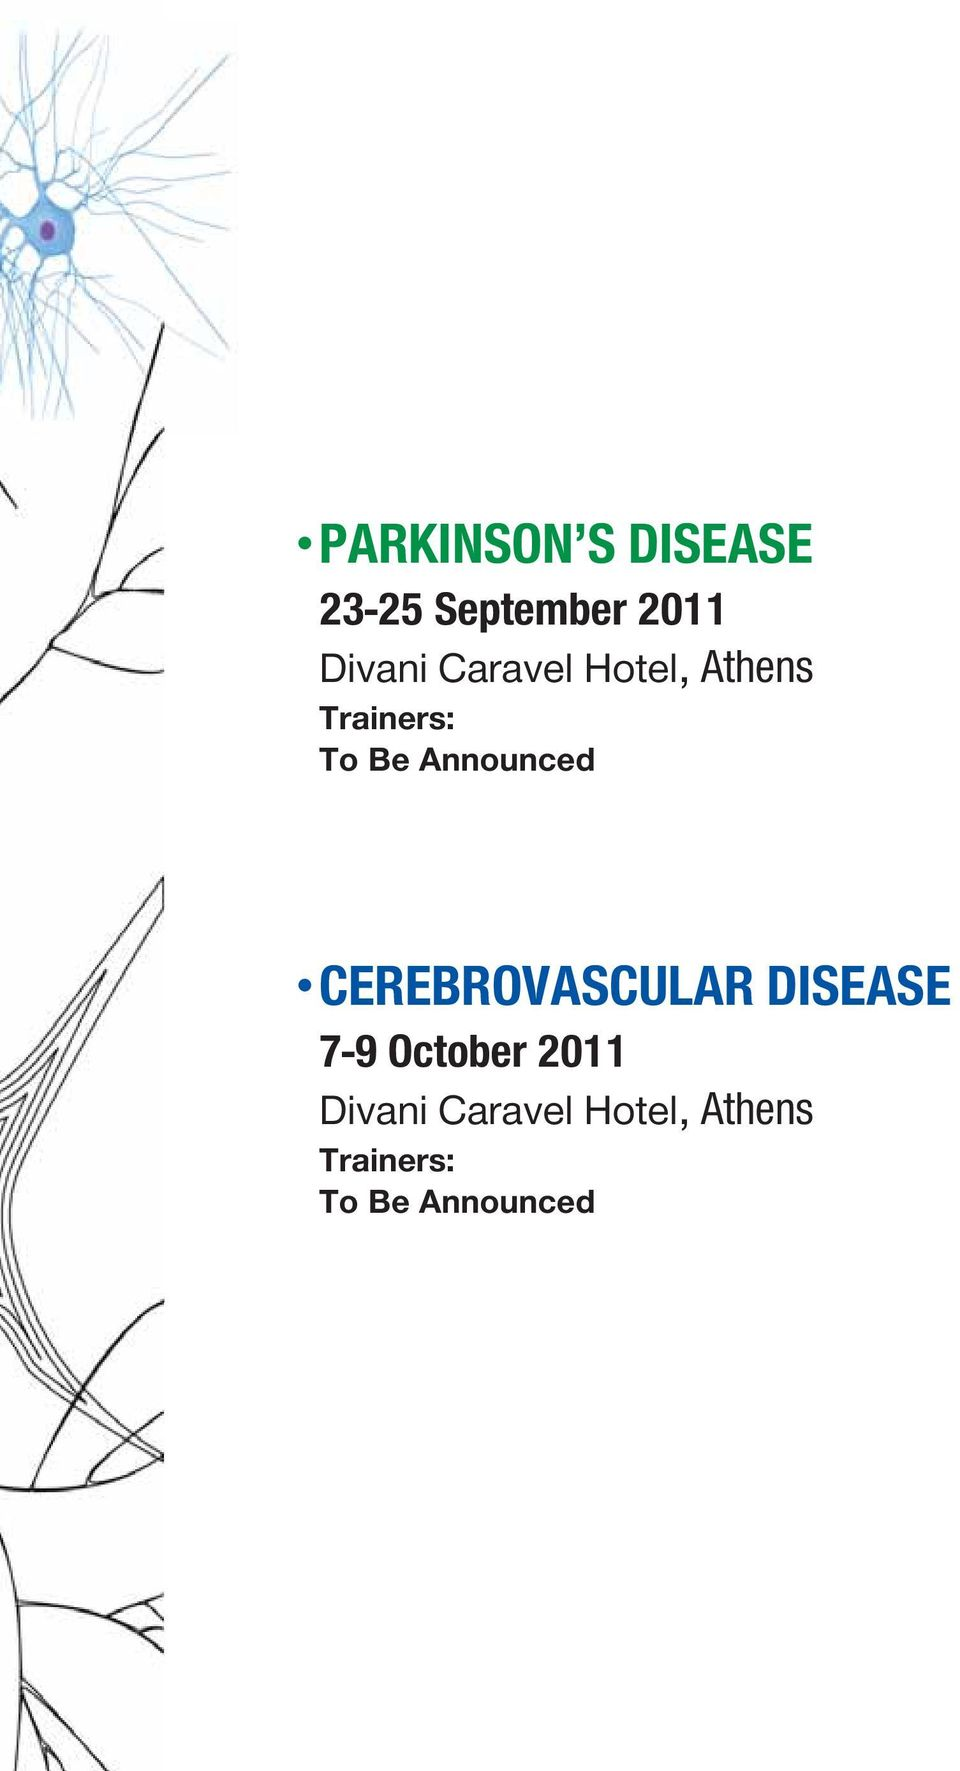 CEREBRΟVASCULAR DISEASE 7-9 October 2011 Divani